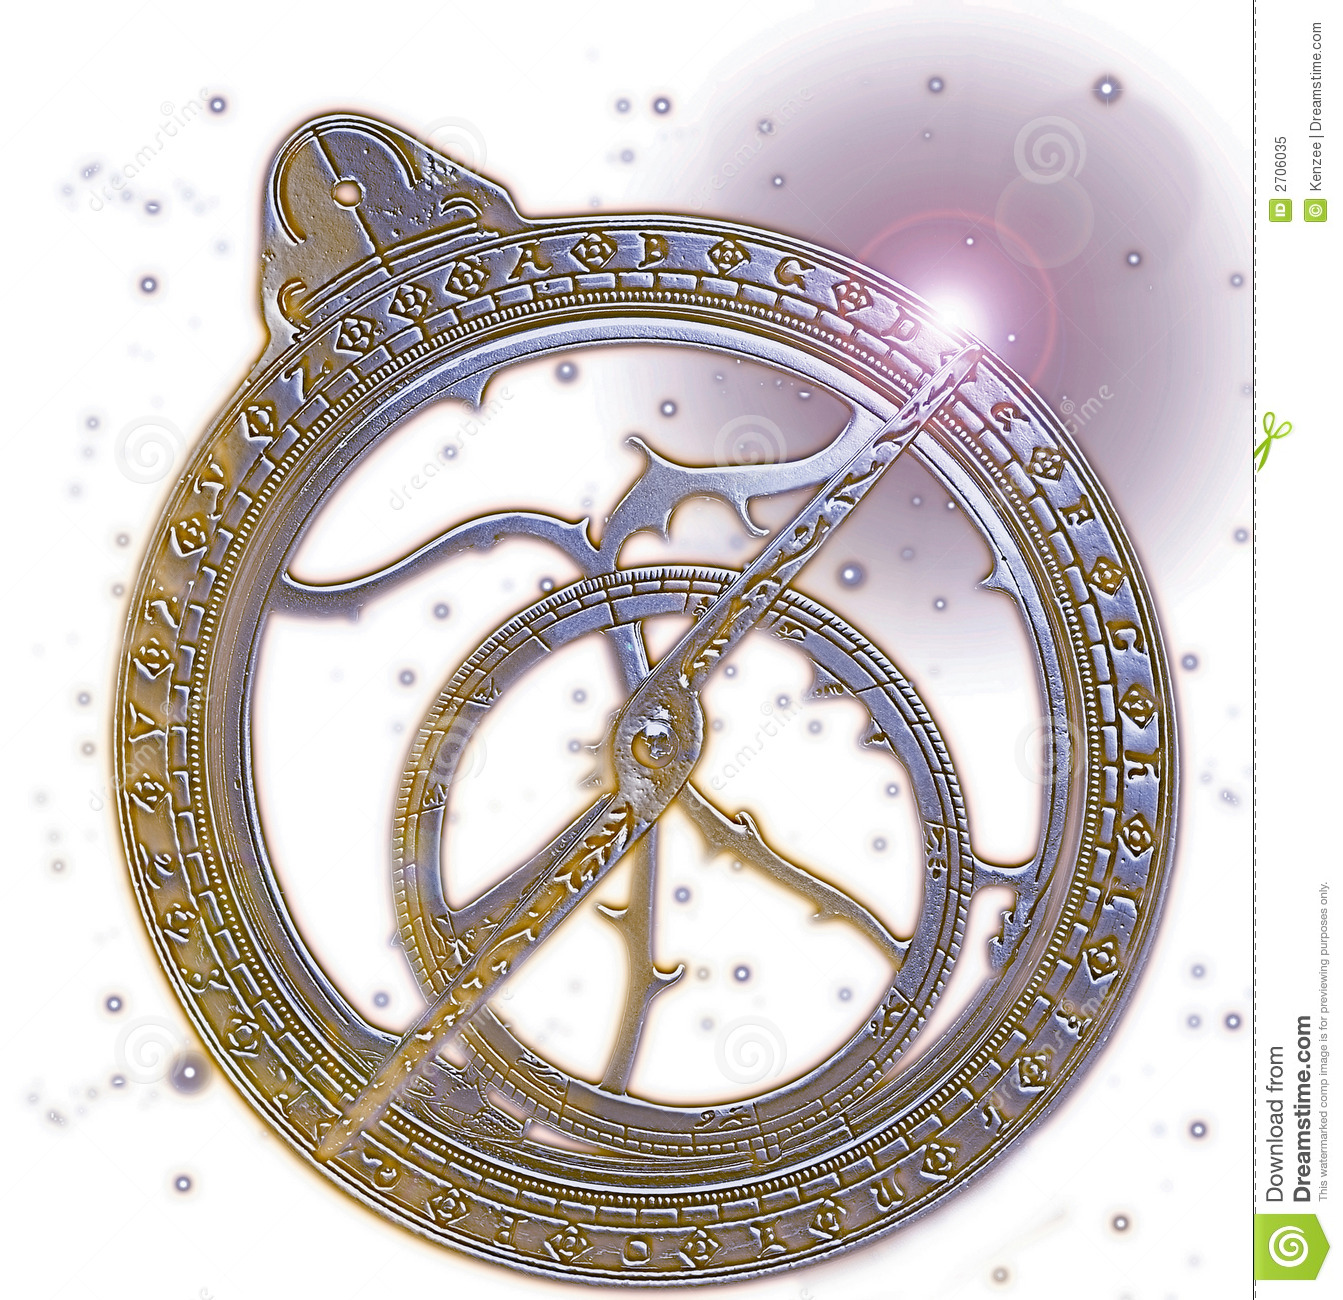 Astrolabe in space stock image. Image of space, invention ...